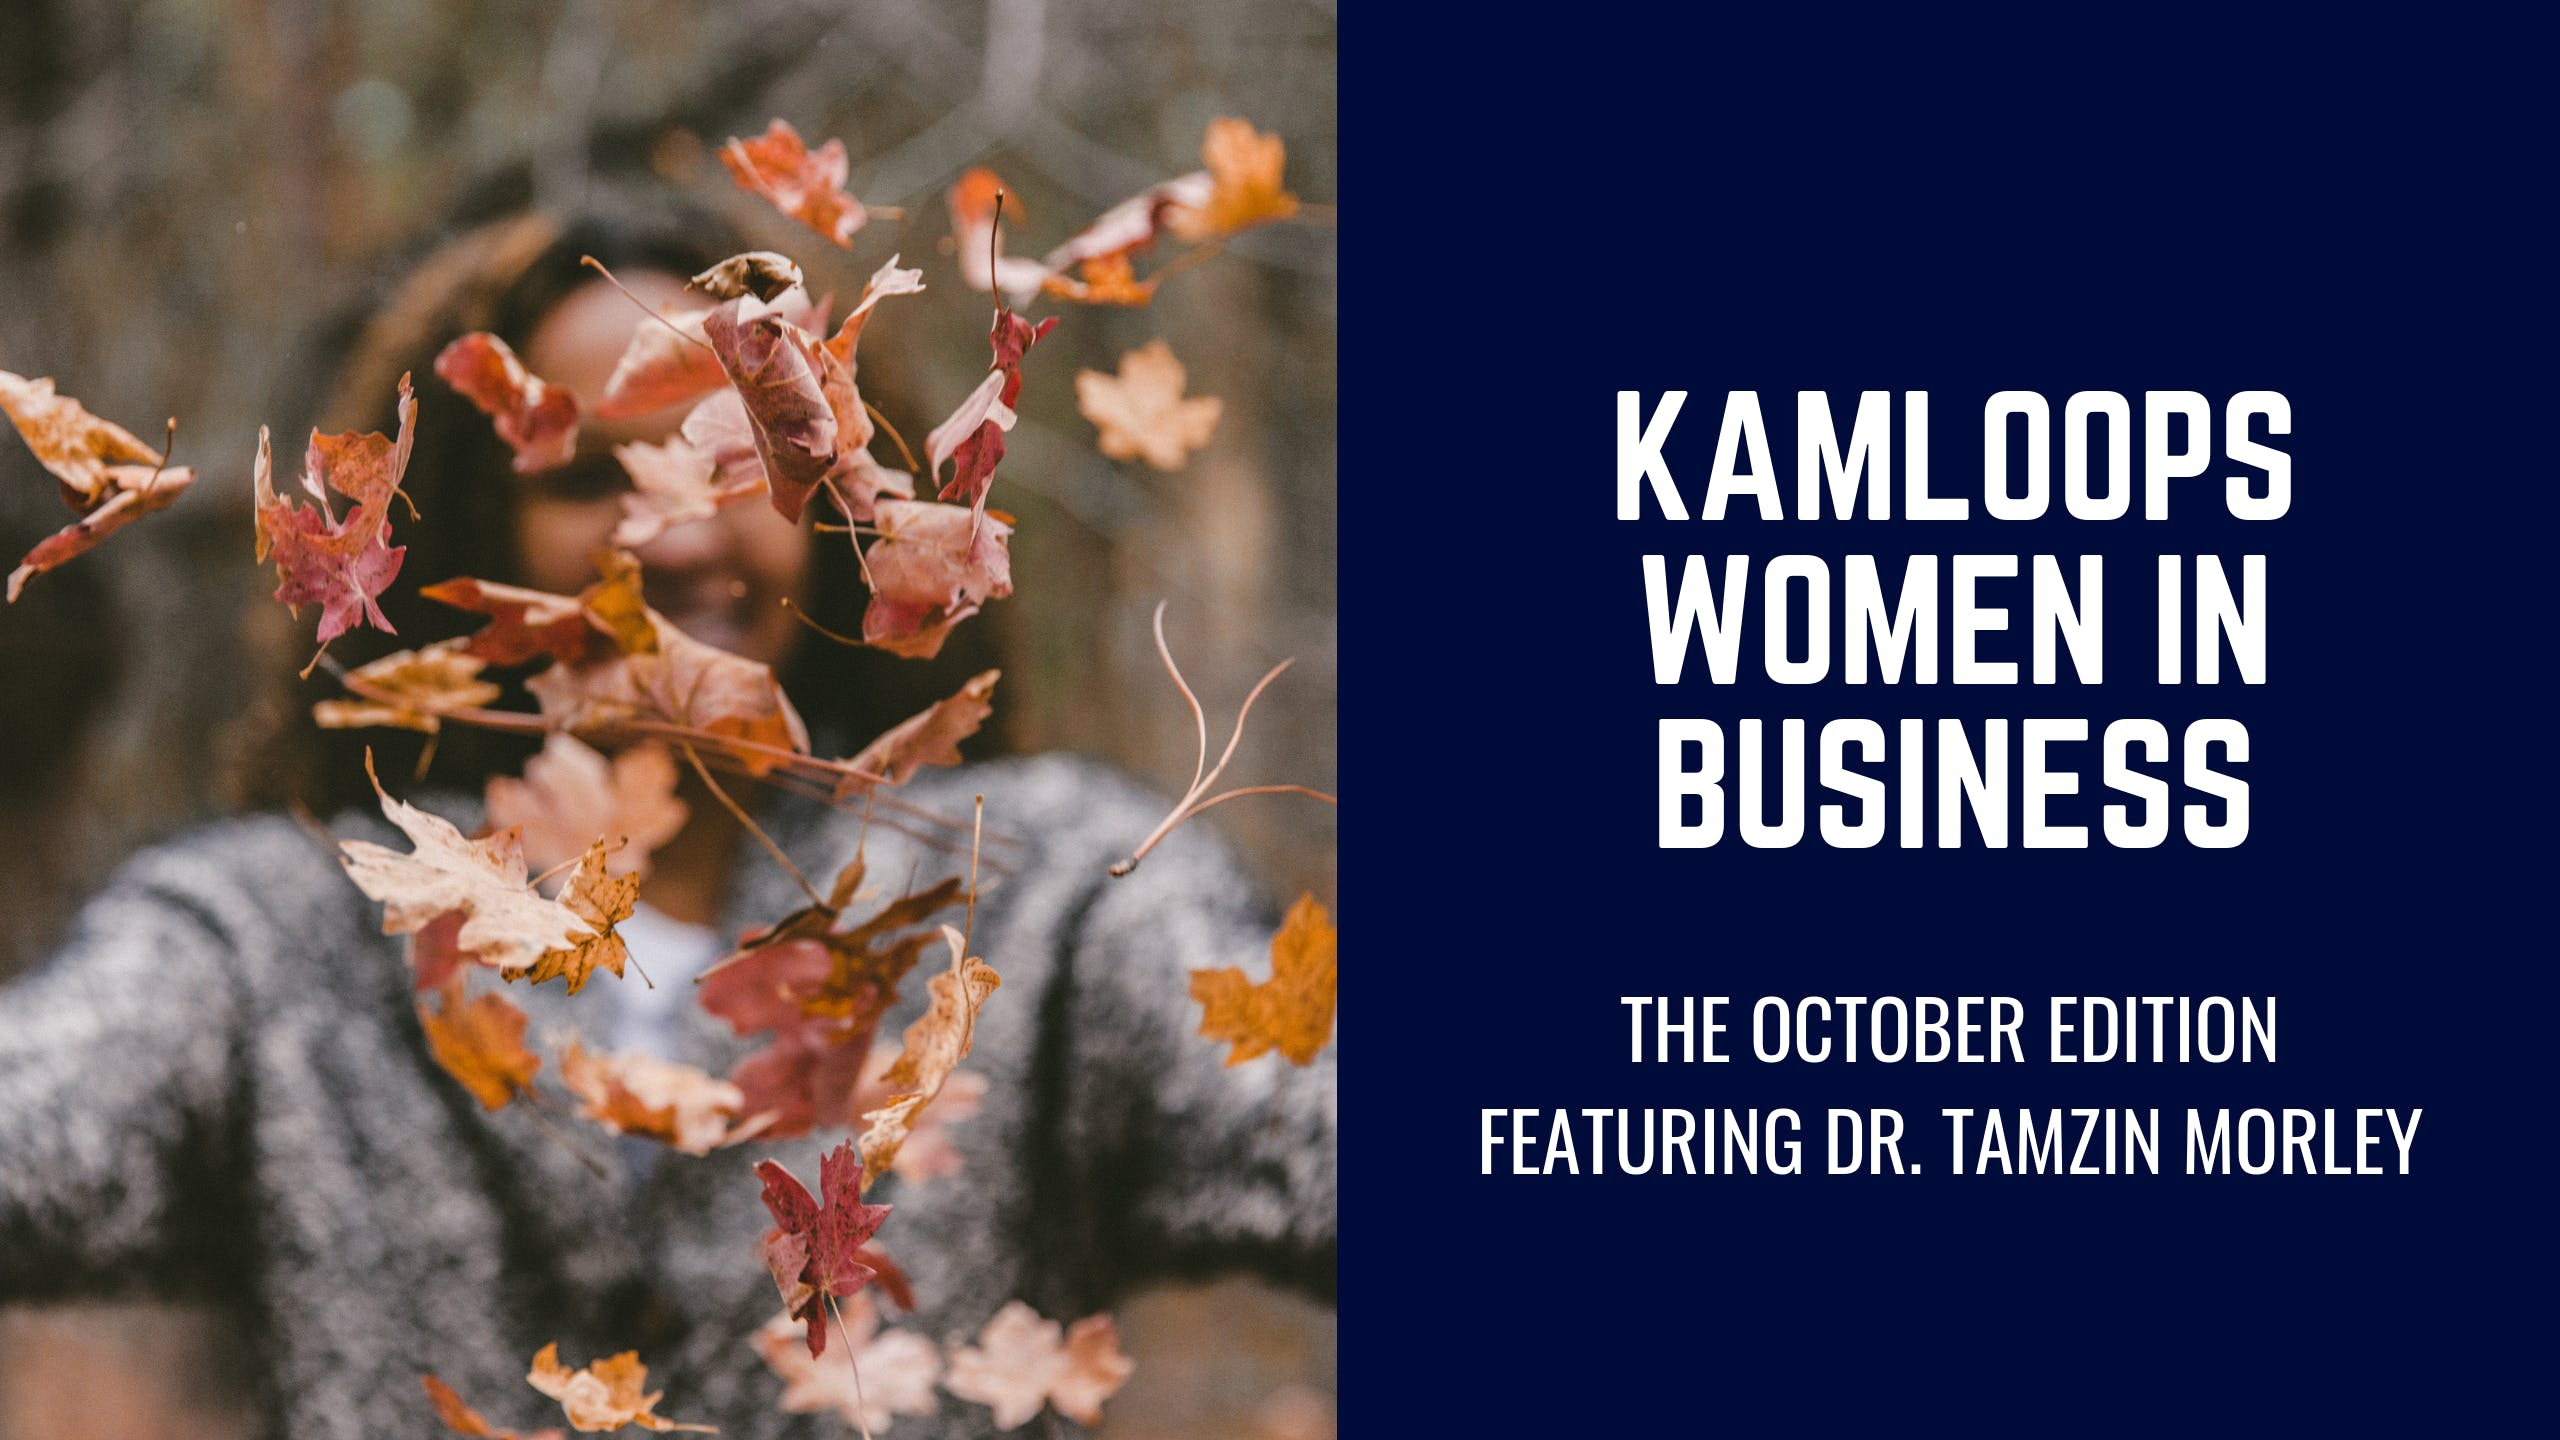 Kamloops Women in Business: October Edition